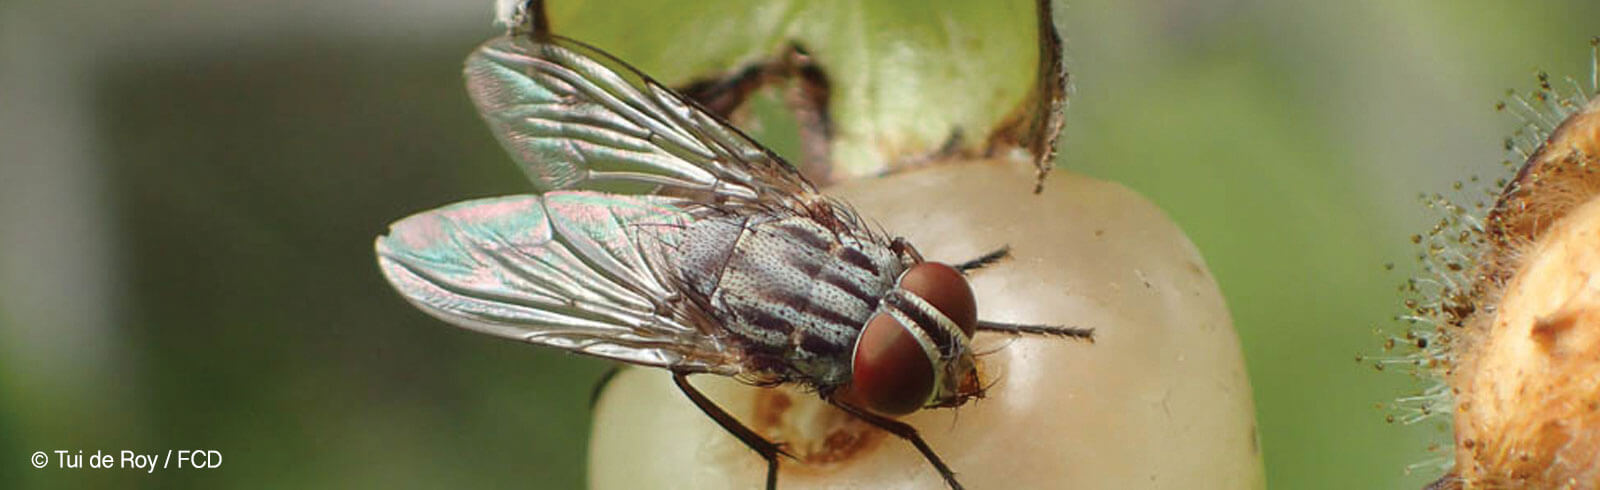 Control of the Invasive Parasitic Fly Philornis downsi